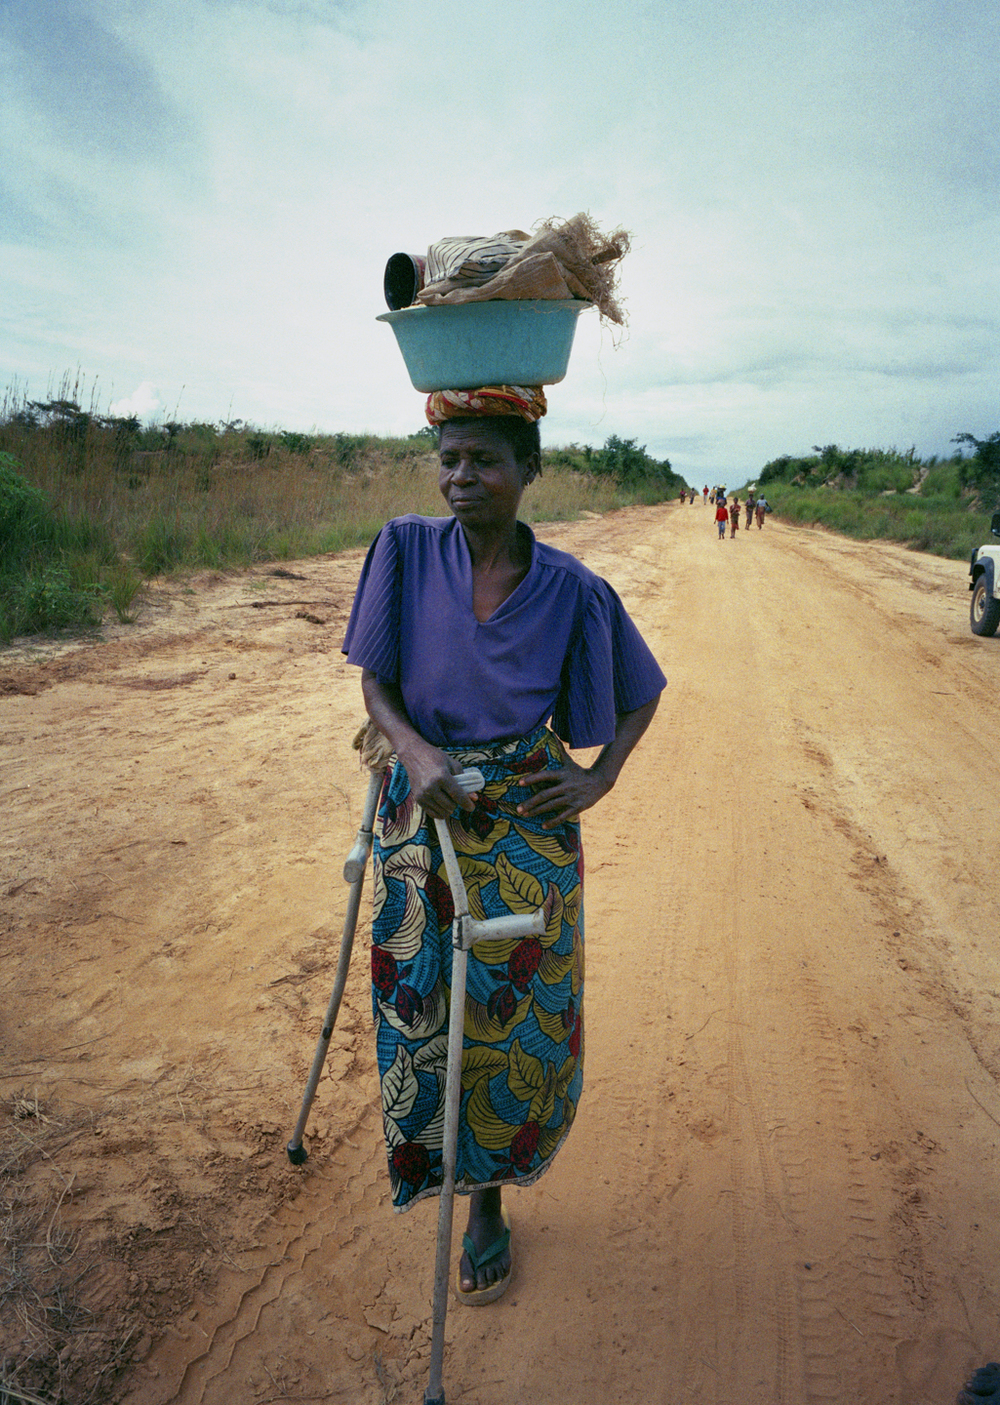 97-41-27a_Refugee On Road -2.jpg